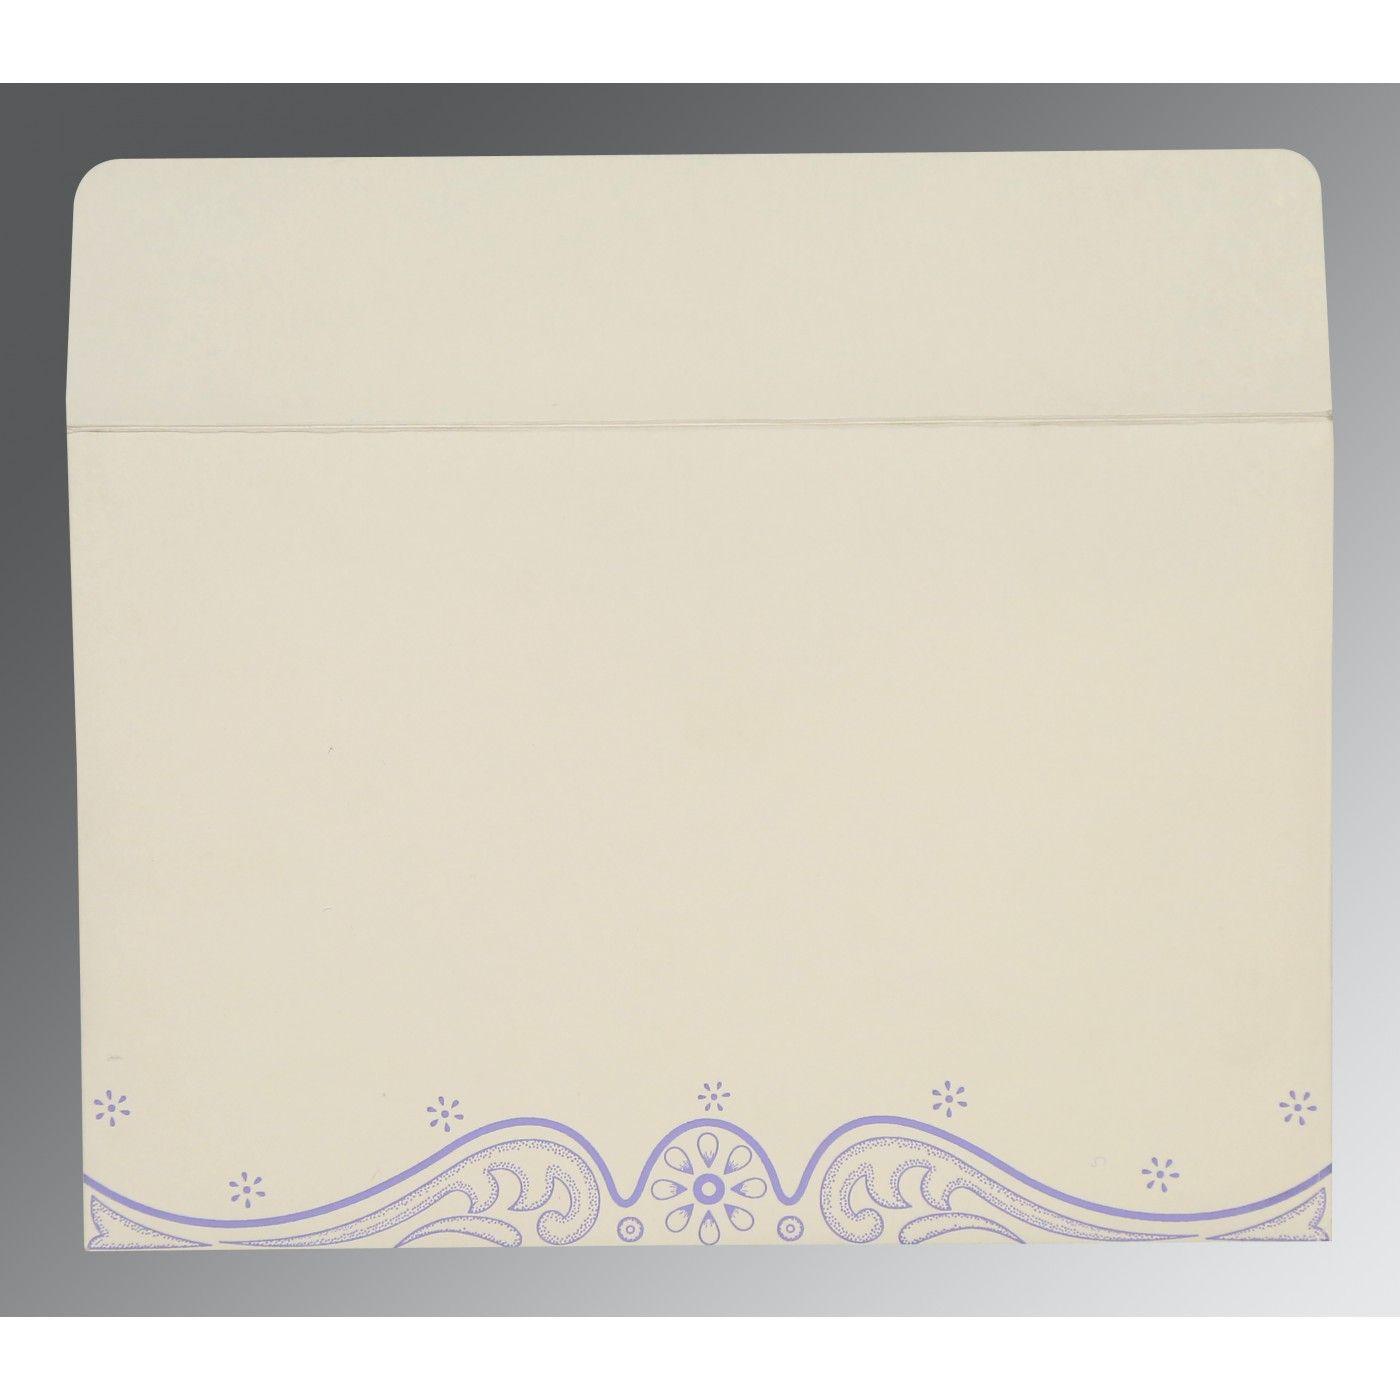 PINK PURPLE MATTE EMBOSSED WEDDING INVITATION : CG-8221E - IndianWeddingCards